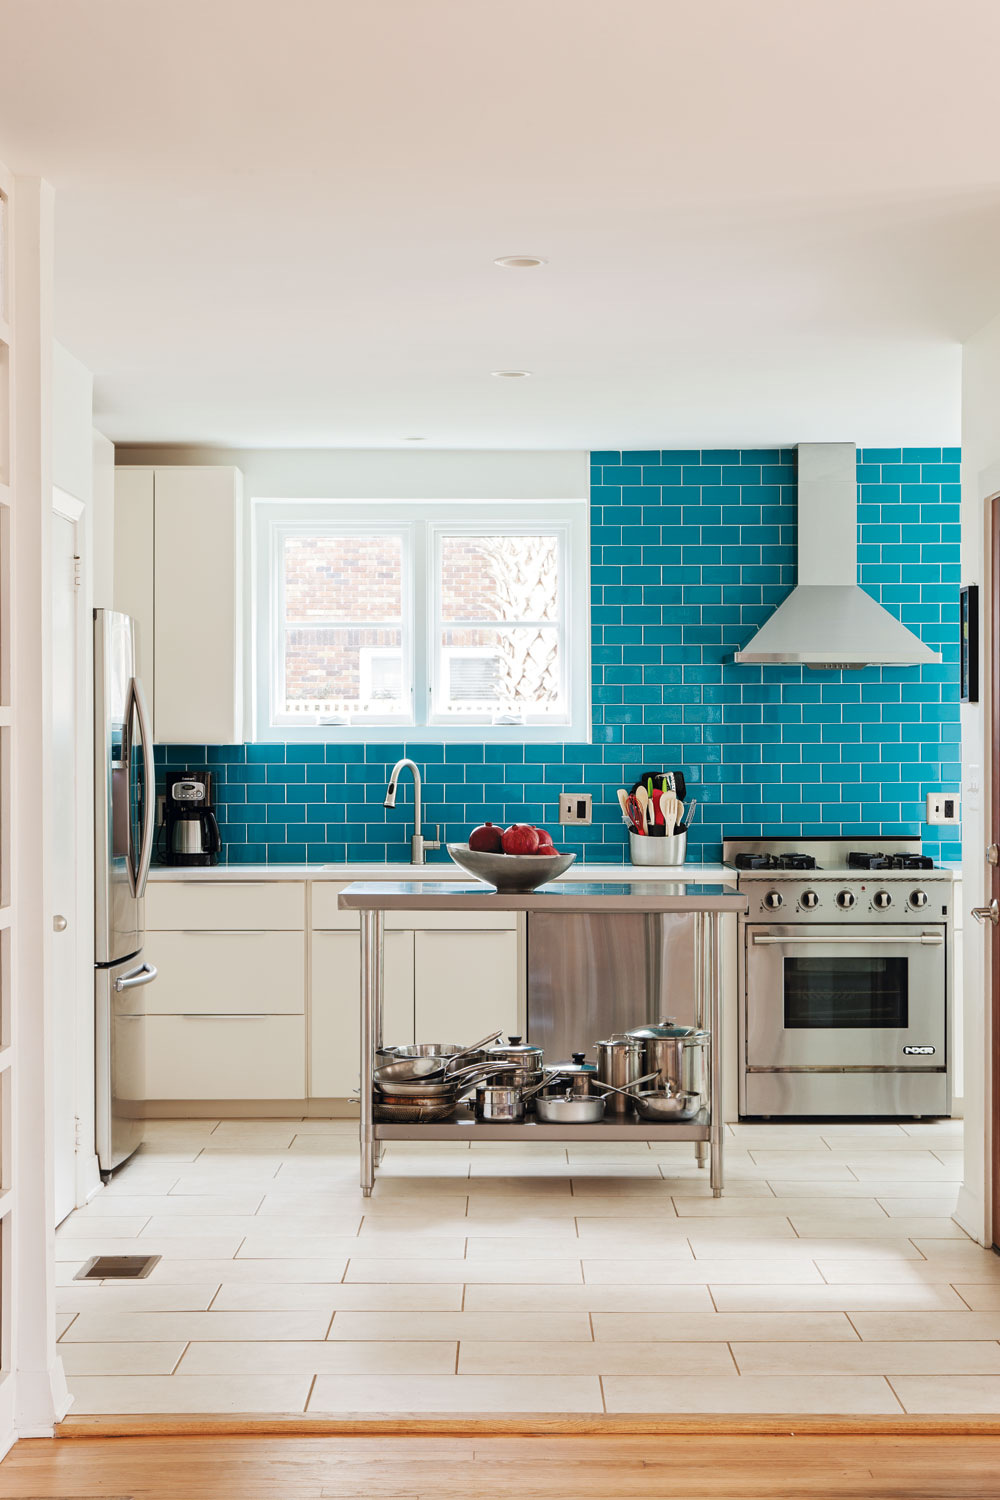 """COAT"" d'AZUR: A wall of bright blue subway tile delivers a splash of color to the modernized kitchen, with new stainless steel appliances, custom cabinets, and Daltile countertops."